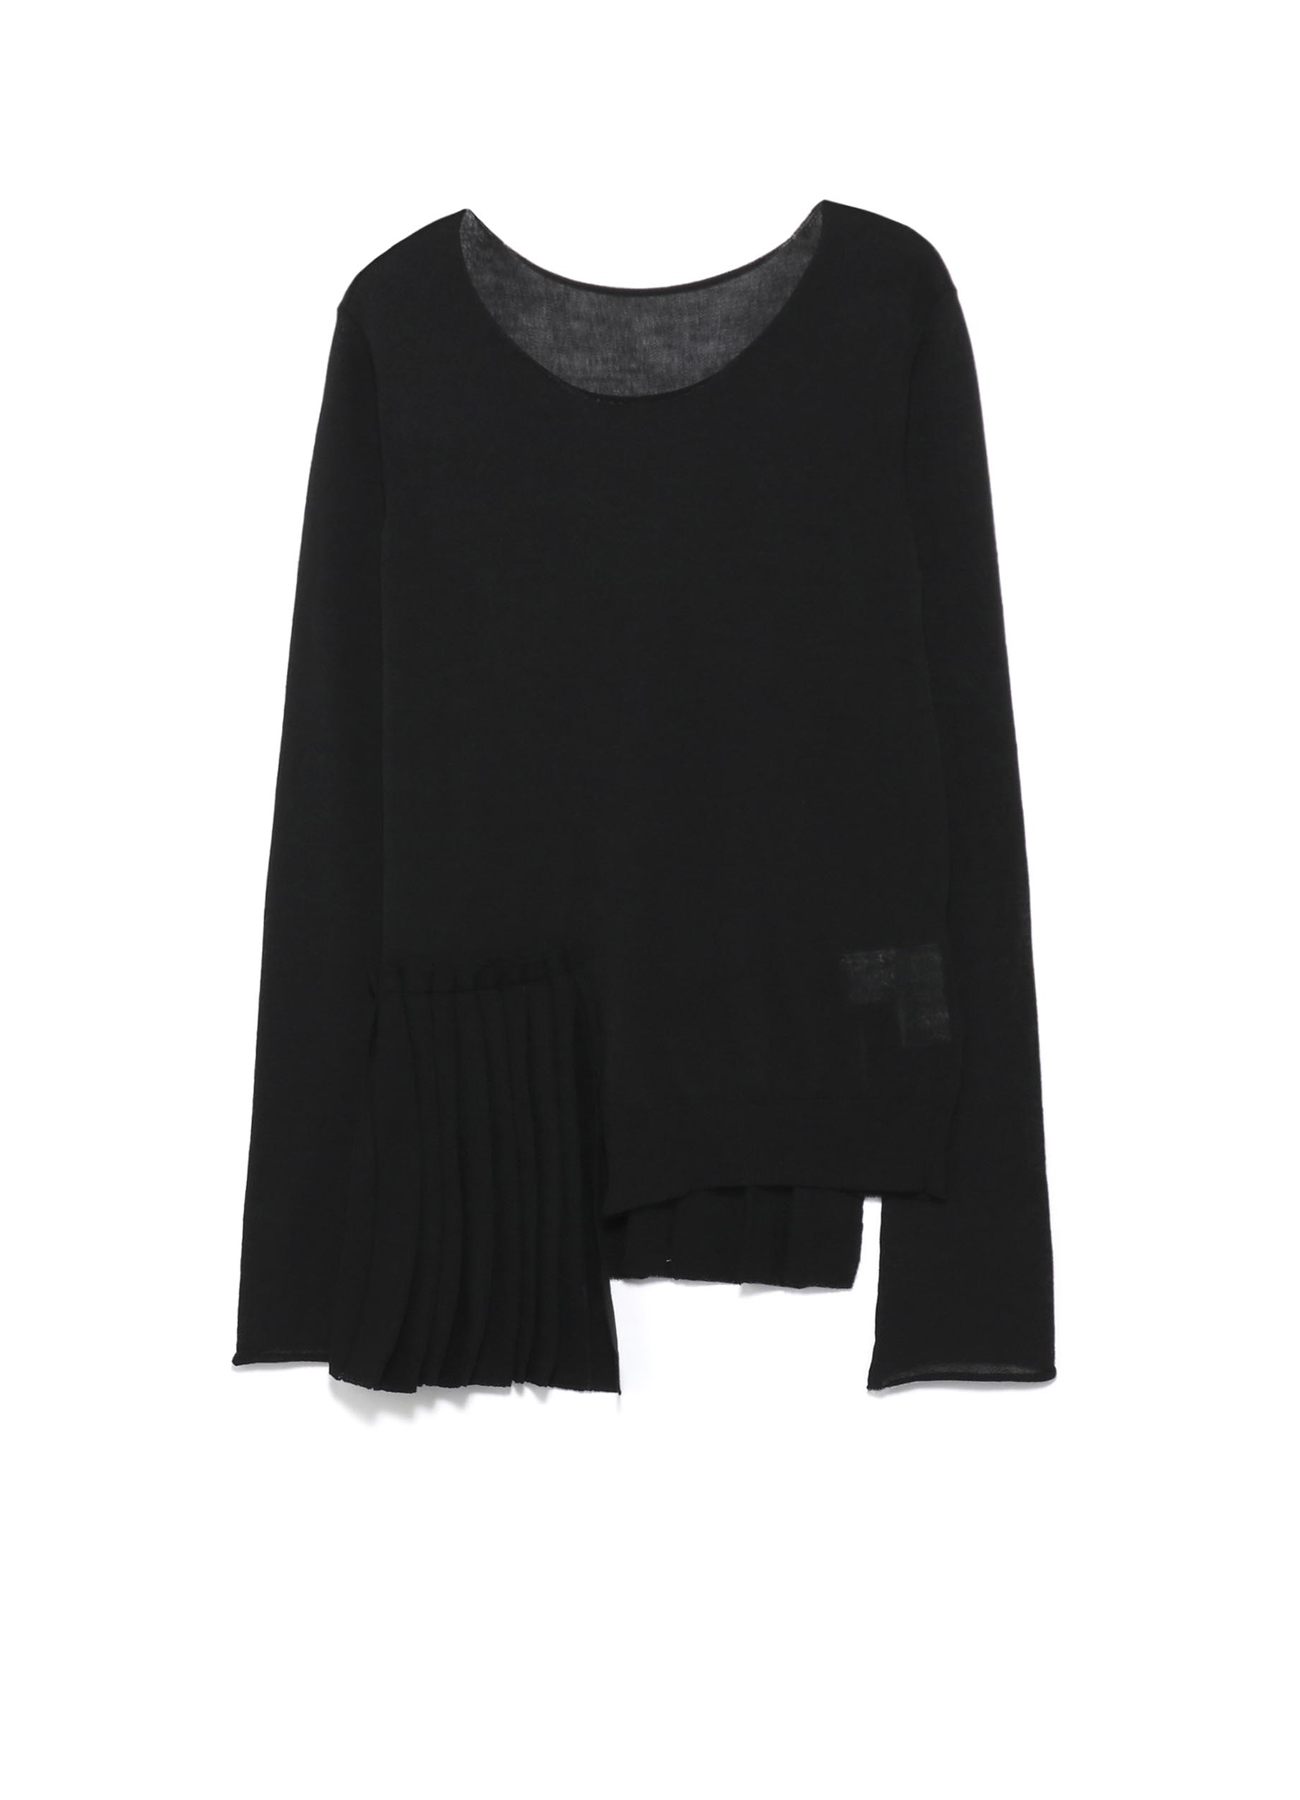 14G1P PLEATS PLEATS SWEATER